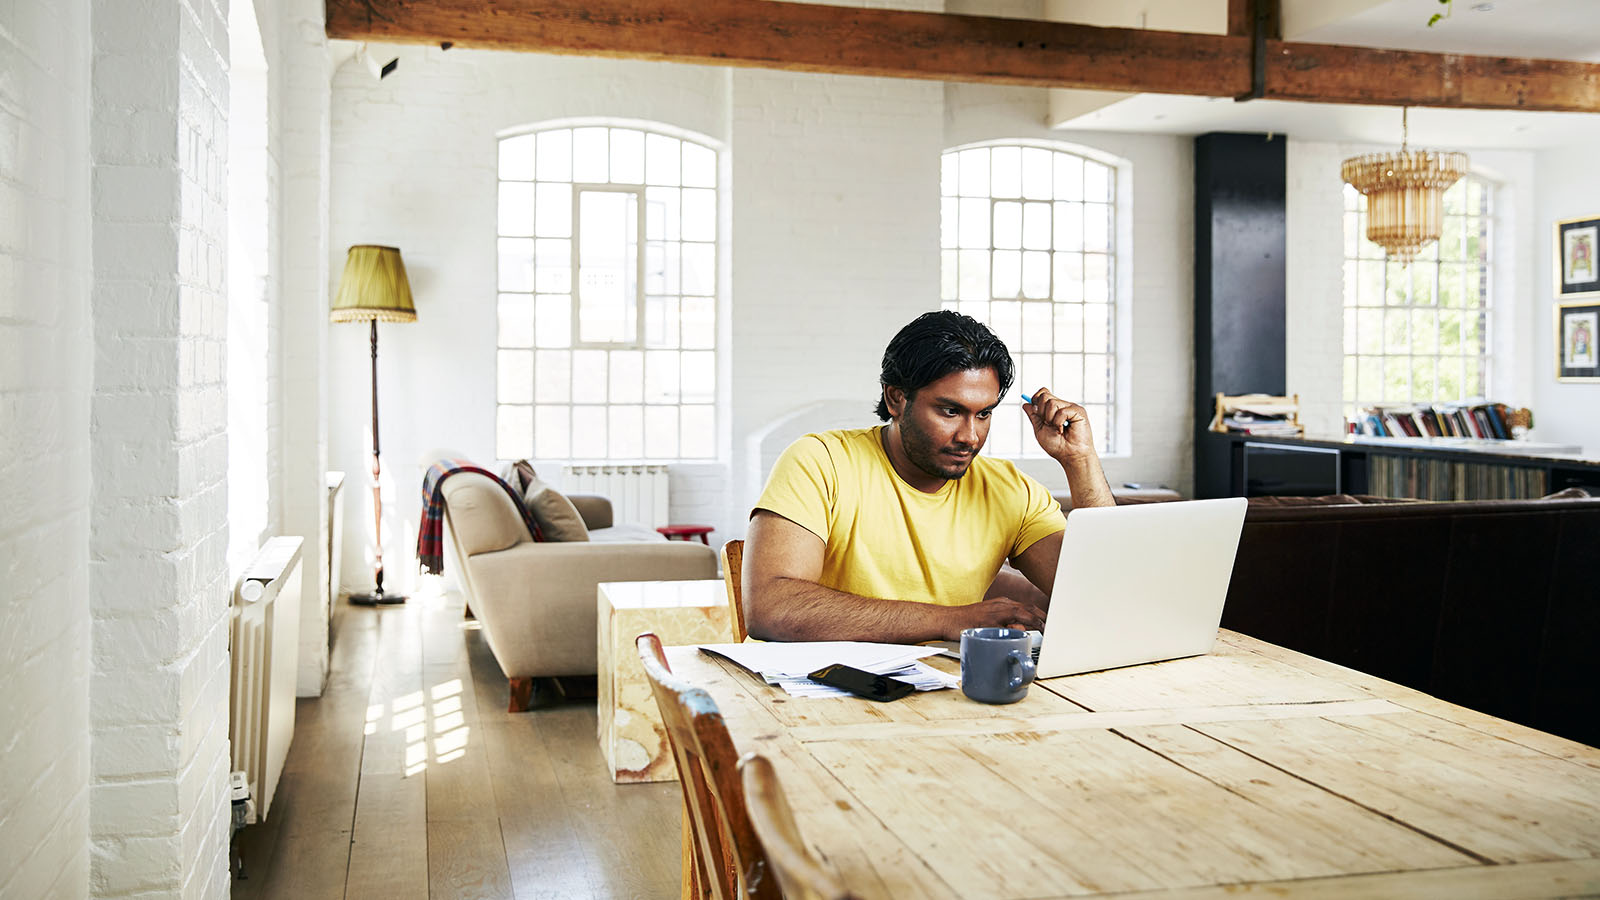 10 Tips That Make Working From Home So Much Better